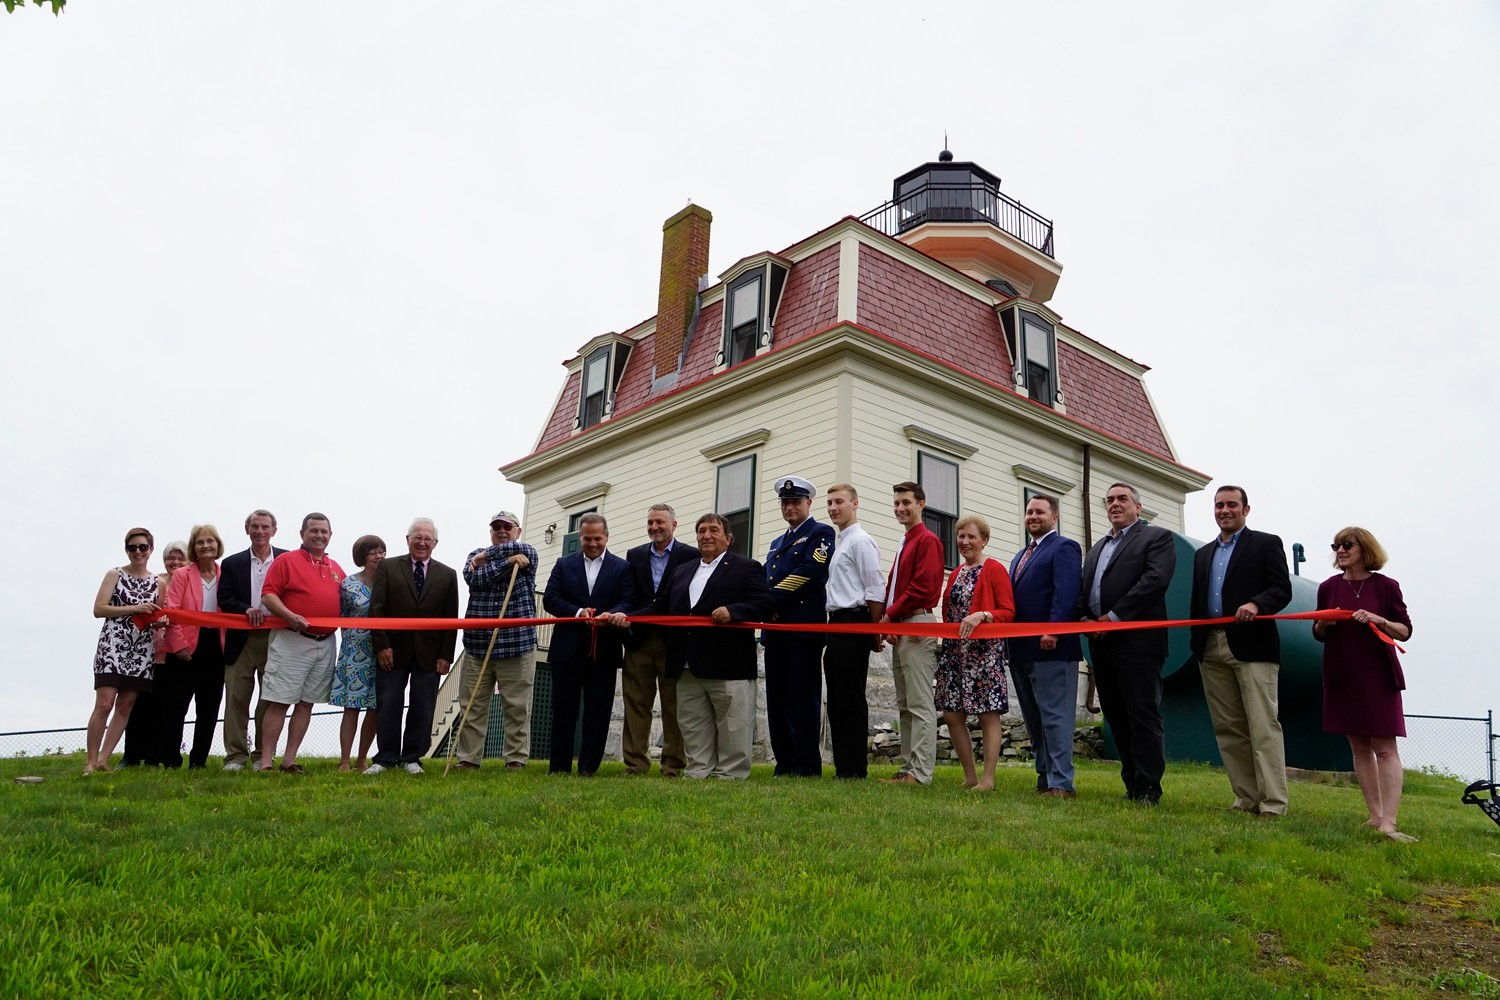 Past Board Chairs and current Board members of Friends of Pomham Rocks Lighthouse were joined by special guests at a ribbon cutting to officially open Pomham Rocks Lighthouse. Left to right are: Katy Pomplun, Carleen Joiner, Anne Greene, Nate Chace, Michael Tripp, Jean Zunda, David Kelleher, Donald Doucette, U.S. Congressman David Cicilline, Keith Lescarbeau, Friends President Joseph Estrella, Dennis Tardiff, Adam Dias, Alex Dias, Louise Paiva, Justin Carr, John Andrade, Carlos Neves and Roberta Randall.